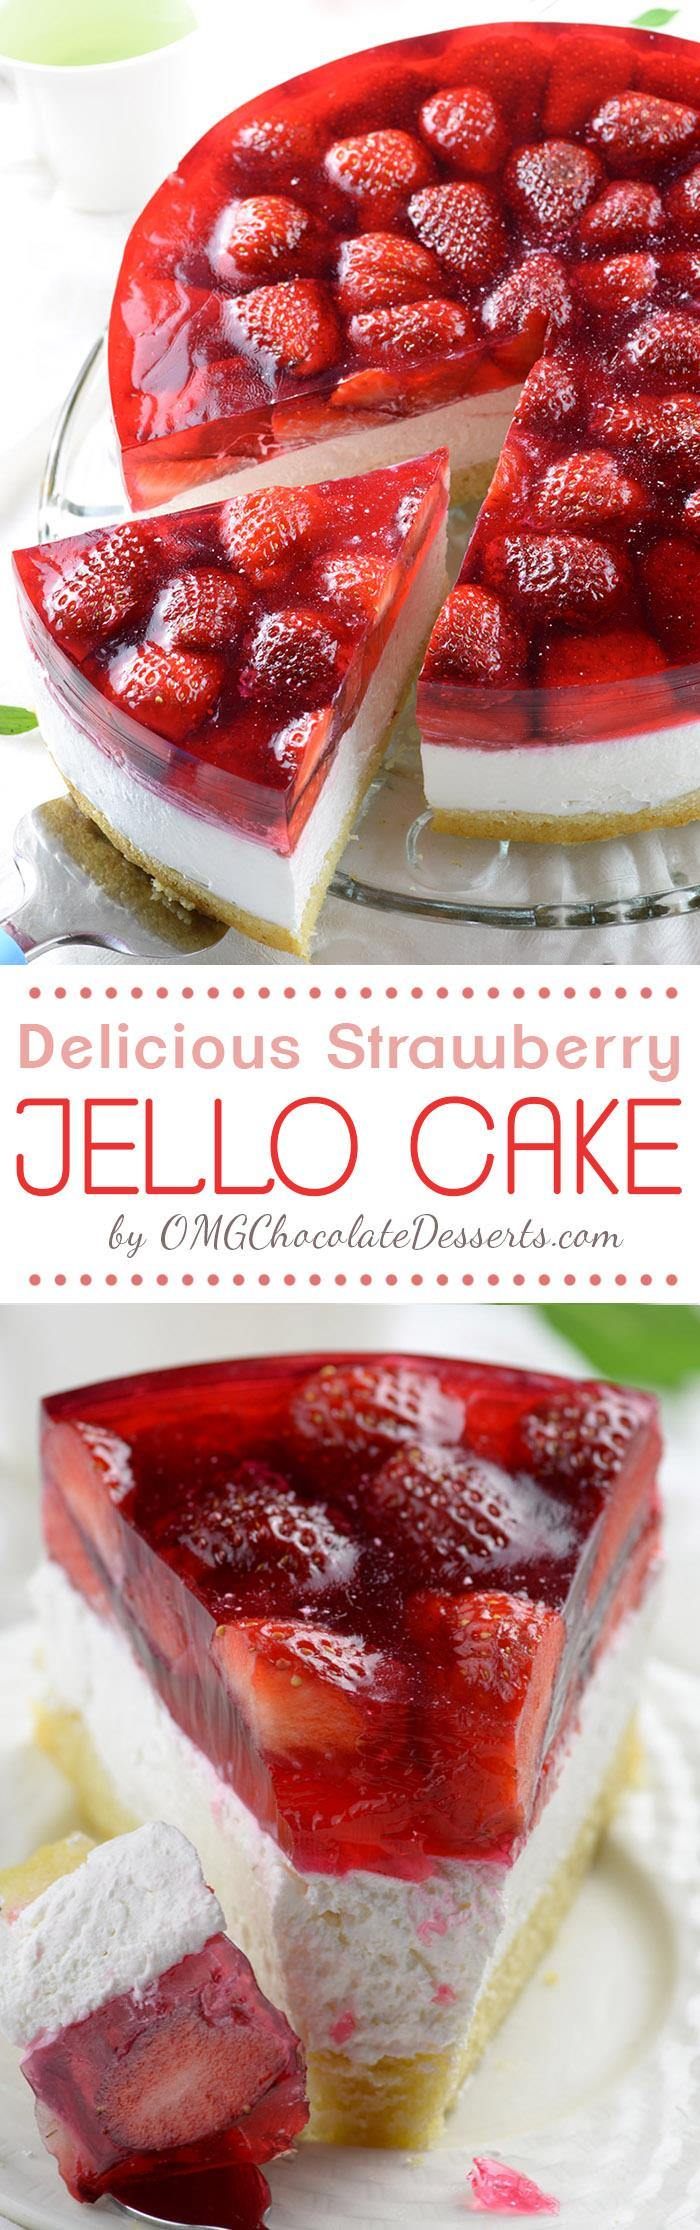 Strawberry Jello Cake Omg Chocolate Desserts